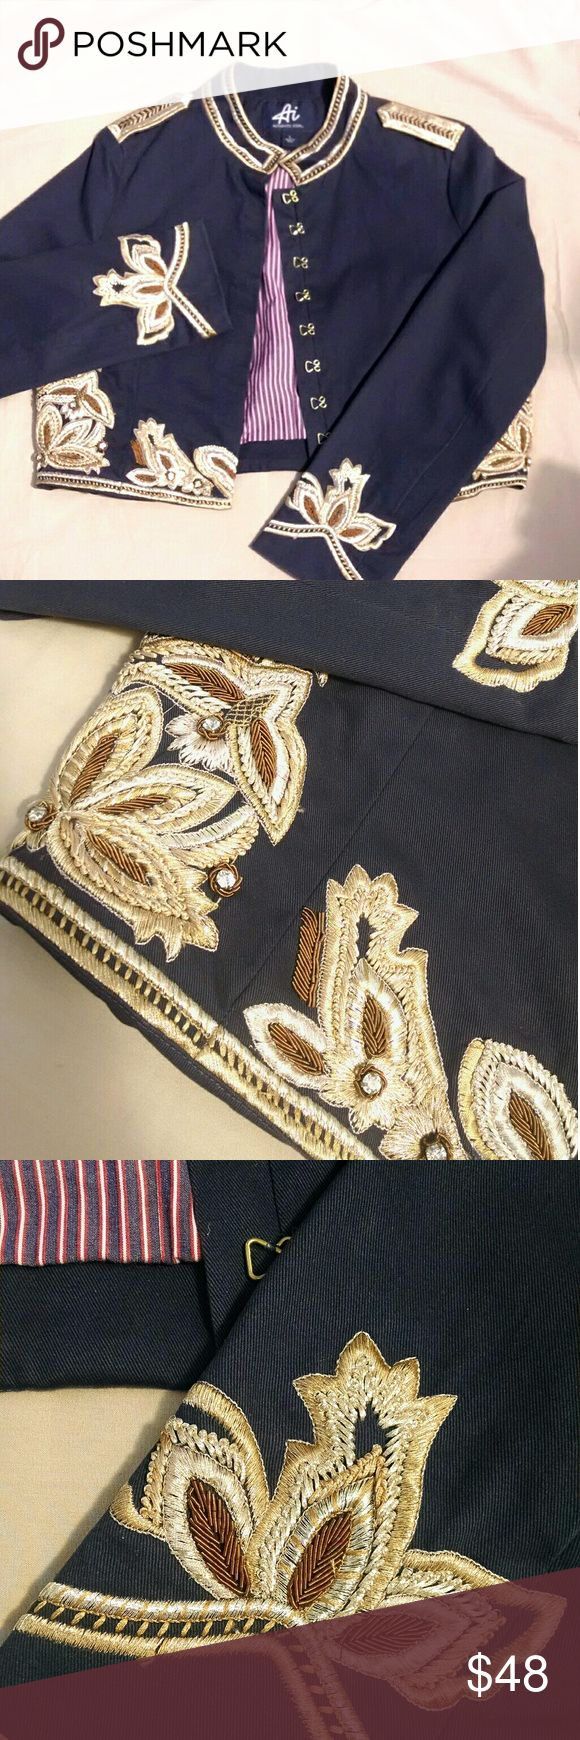 NWOT Authentic Icon Embroidered Military Jacket Never worn! Stunning navy military jacket in a cropped style from the Authentic Icon line, features gorgeous gold embroidery and beading with white crystal accents and vertical striped navy, red, and white lining. Also features gold metal hook-and-eye closures and embroidered epaulets.   Minor imperfections in the embroidery work, which is expected for such intricate threading and how the garment was purchased. Small,  hardly noticeable pulls…